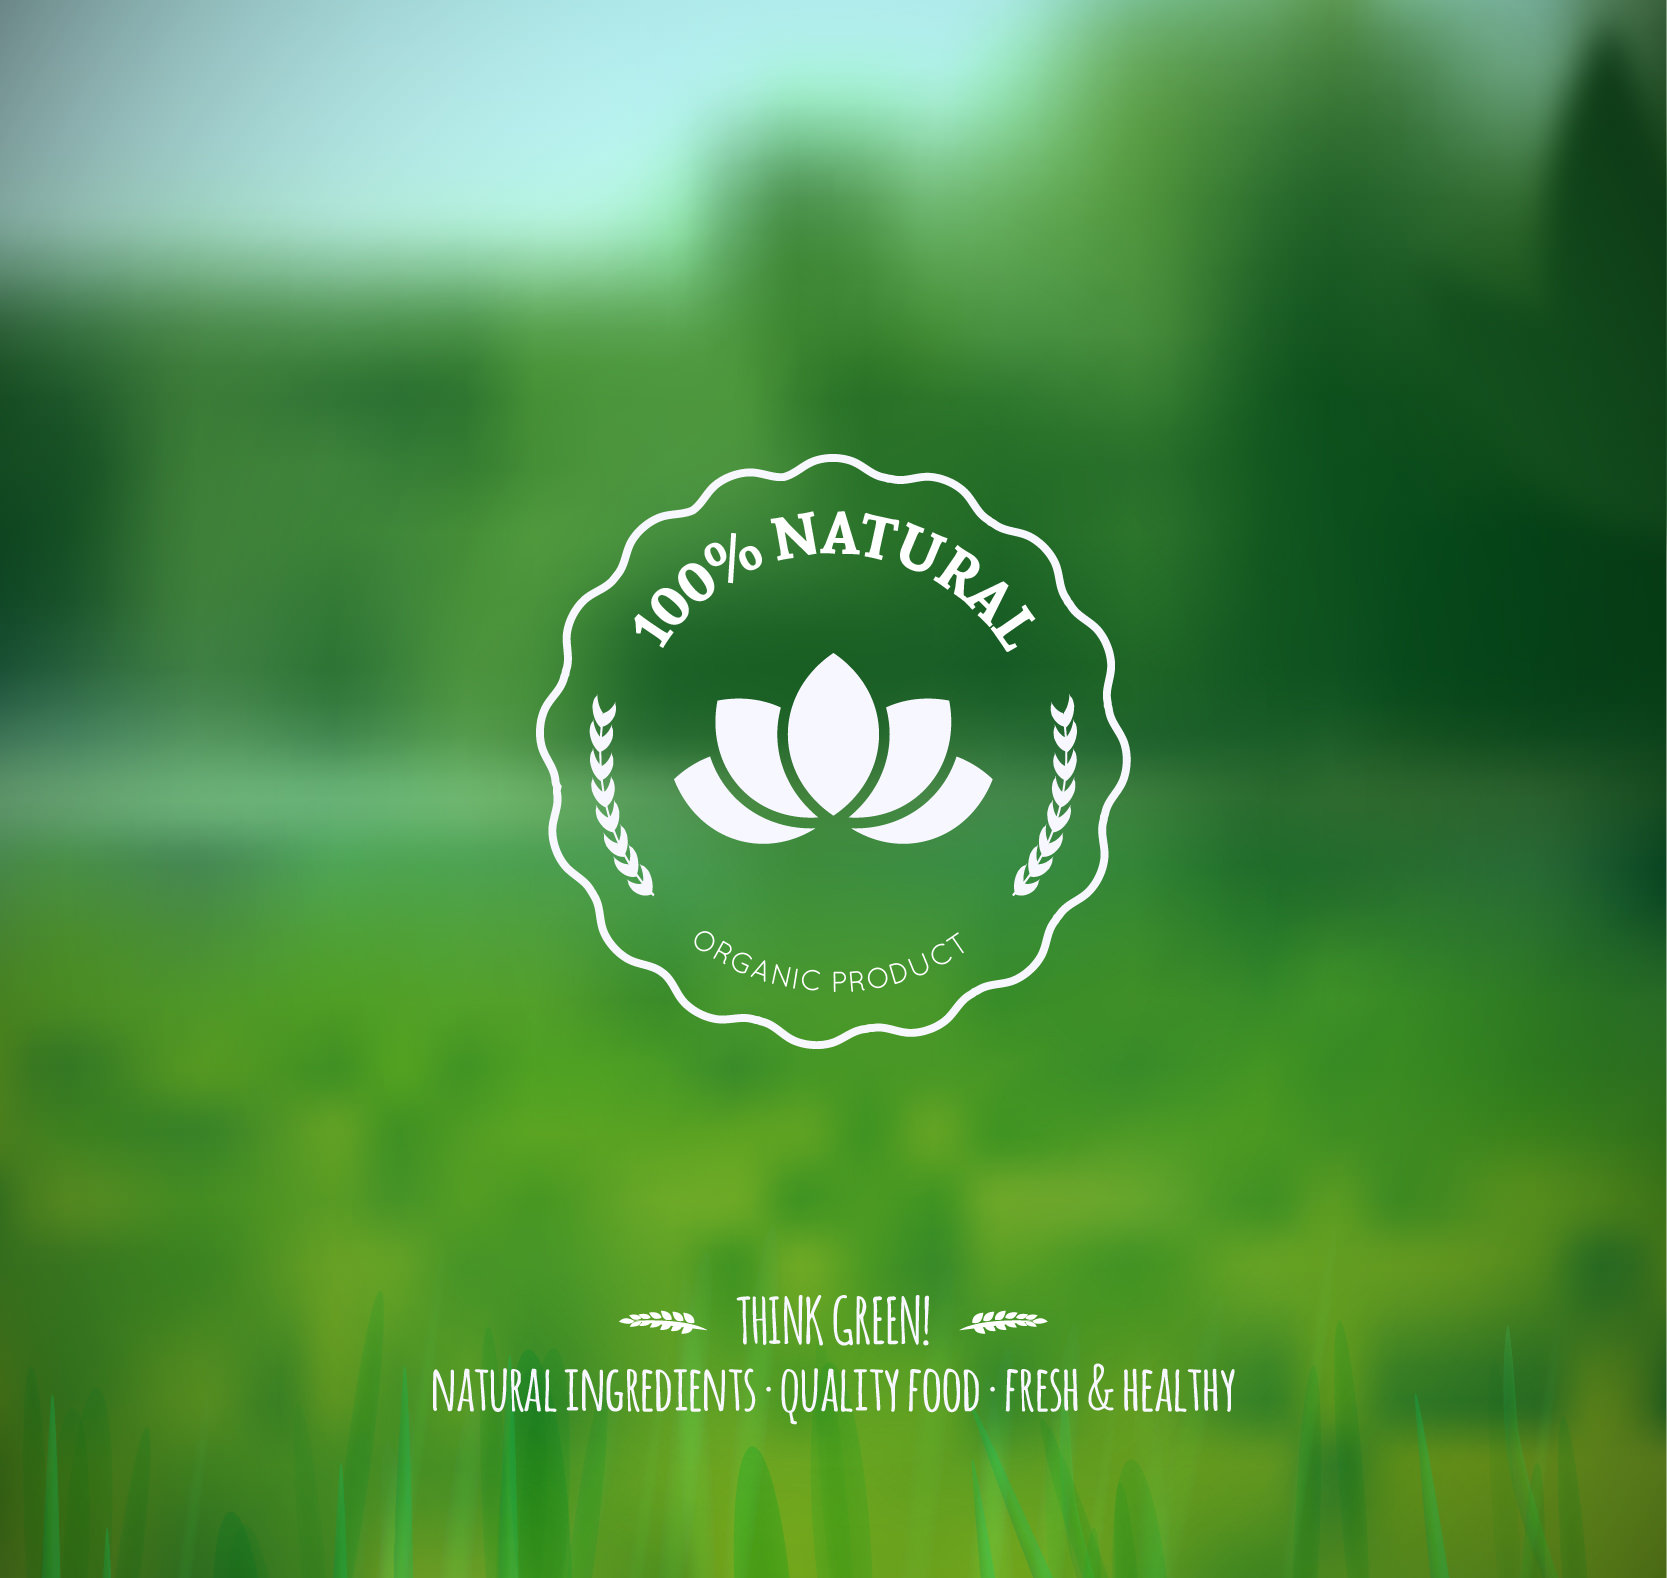 Blurred Nature Background with retro badge